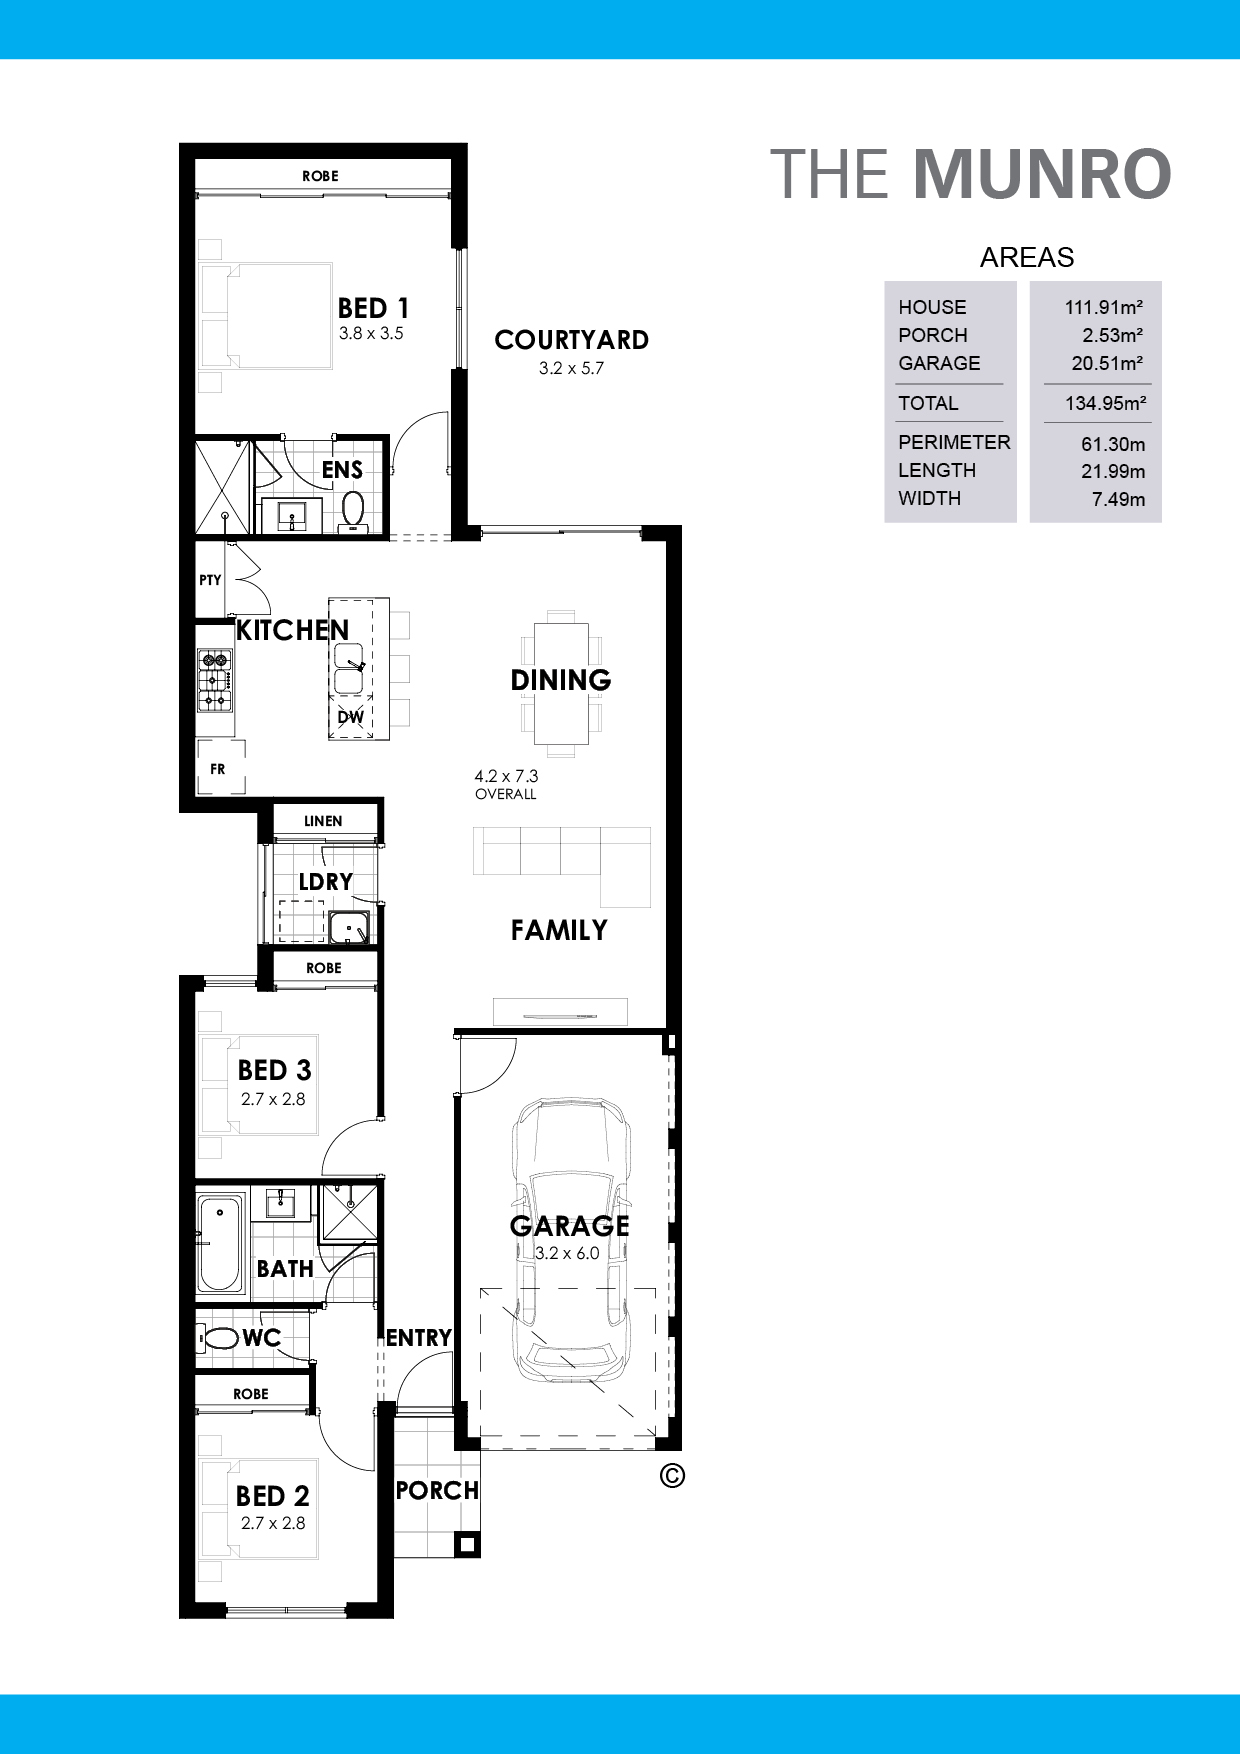 The Munro Floorplan